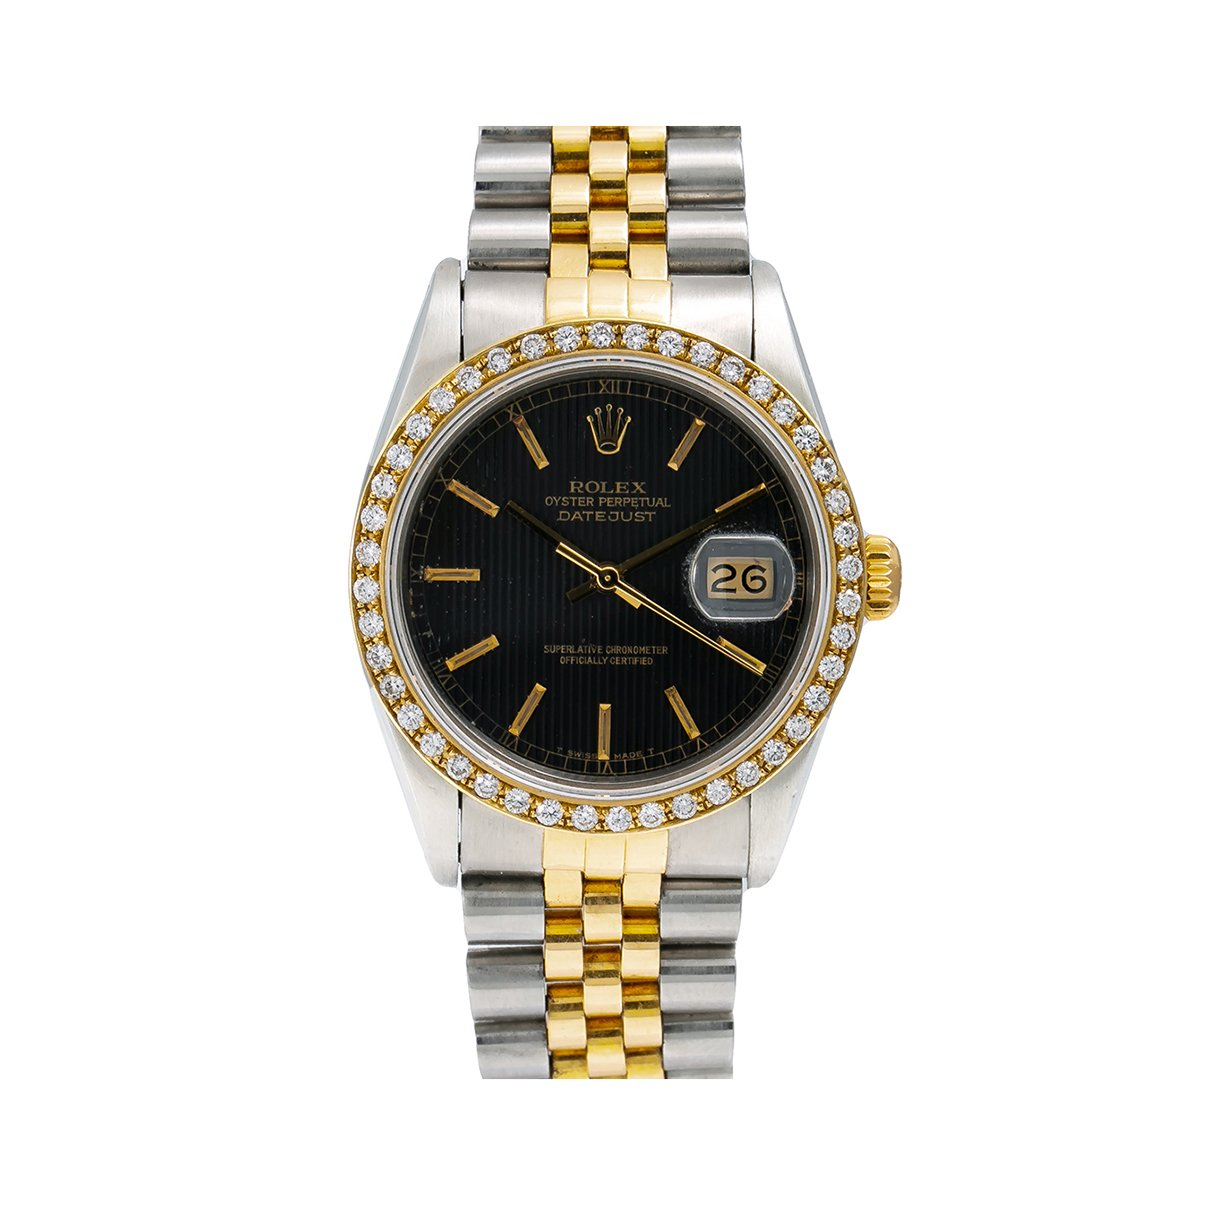 Rolex Datejust Diamond Watch, 16013 36mm, Black Dial With 1.10 CT Diamonds